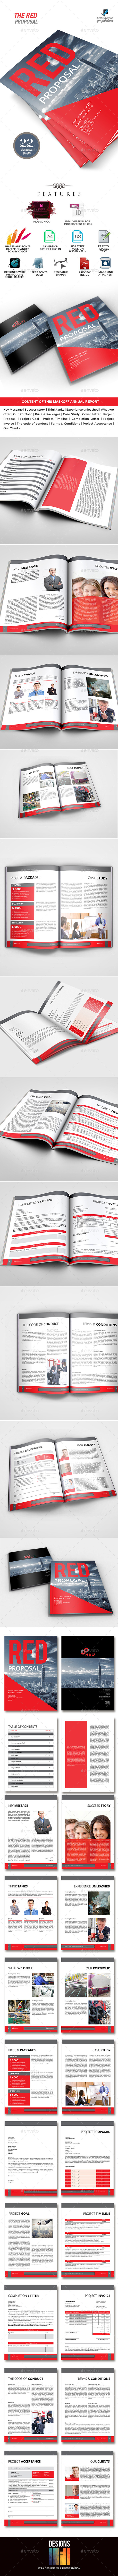 The Red Multipurpose Proposal Template - Proposals & Invoices Stationery